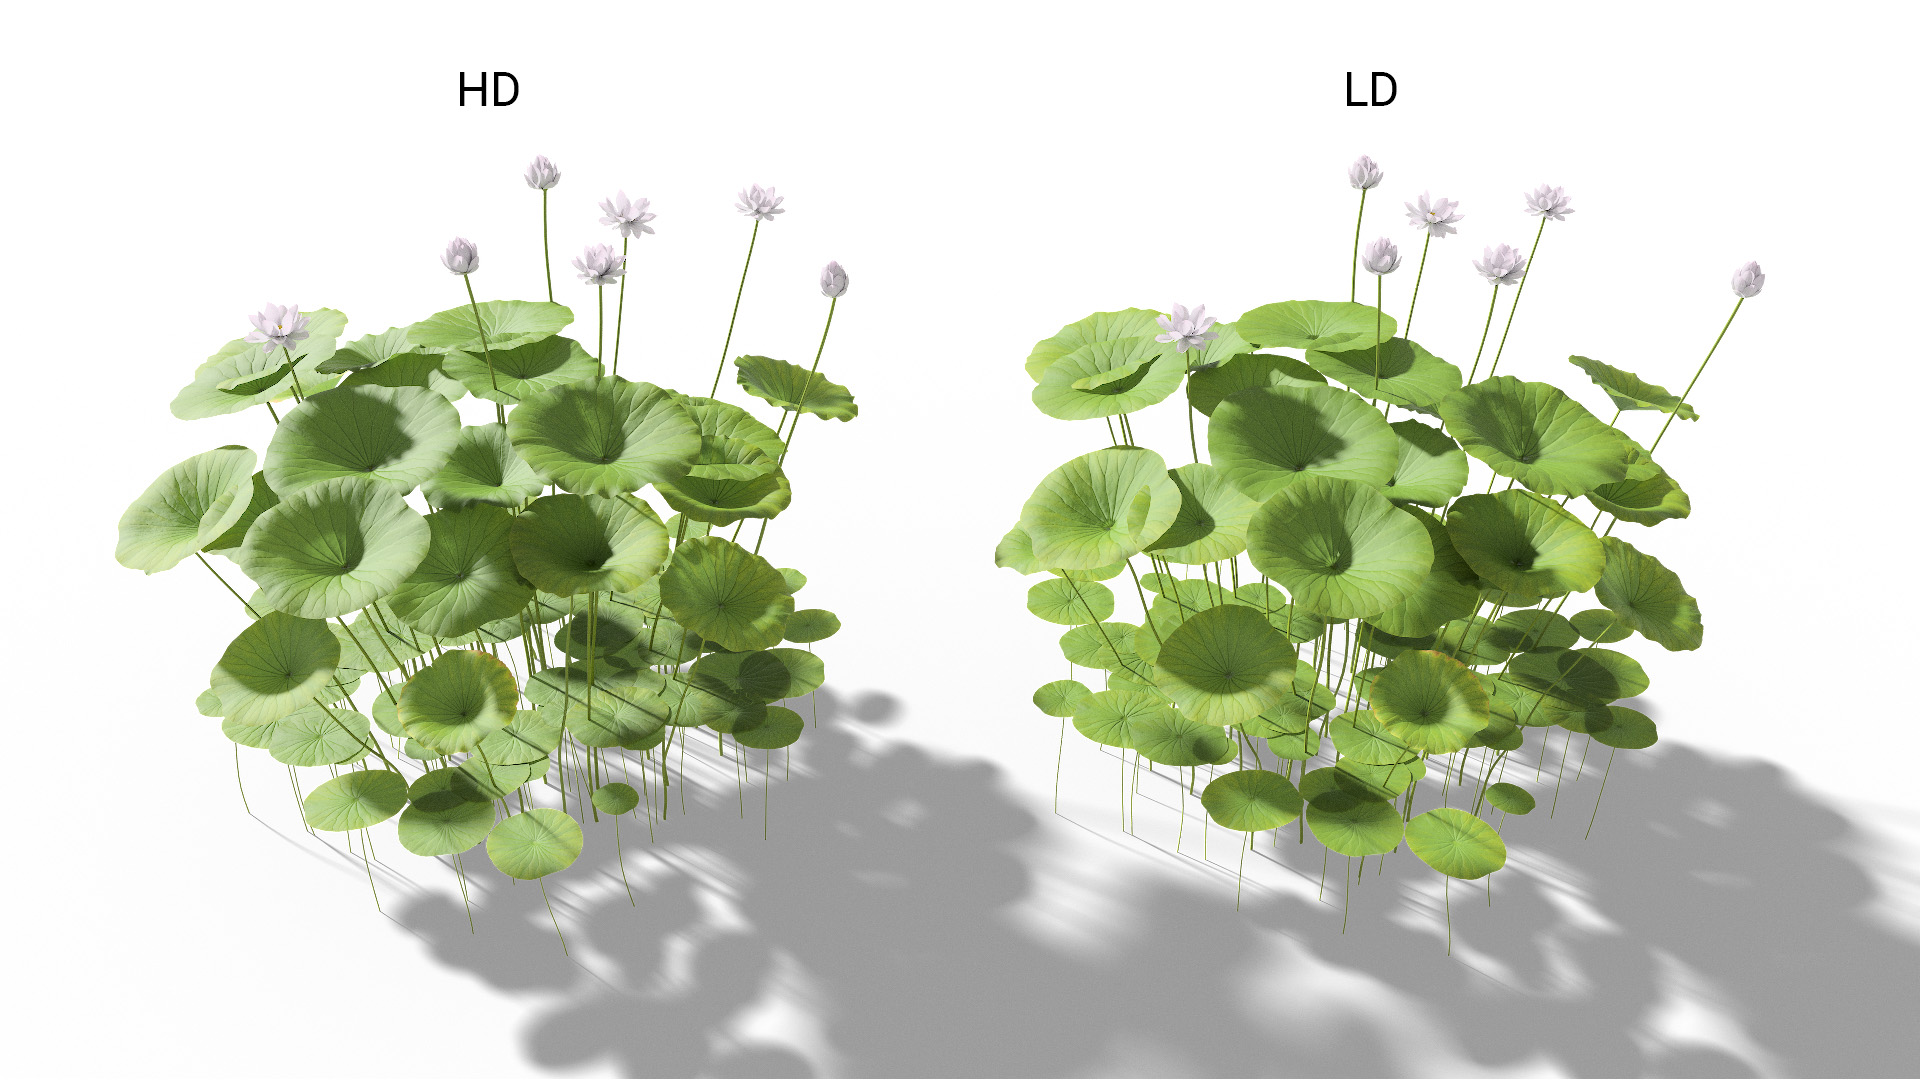 3D model of the Sacred lotus Nelumbo nucifera included versions